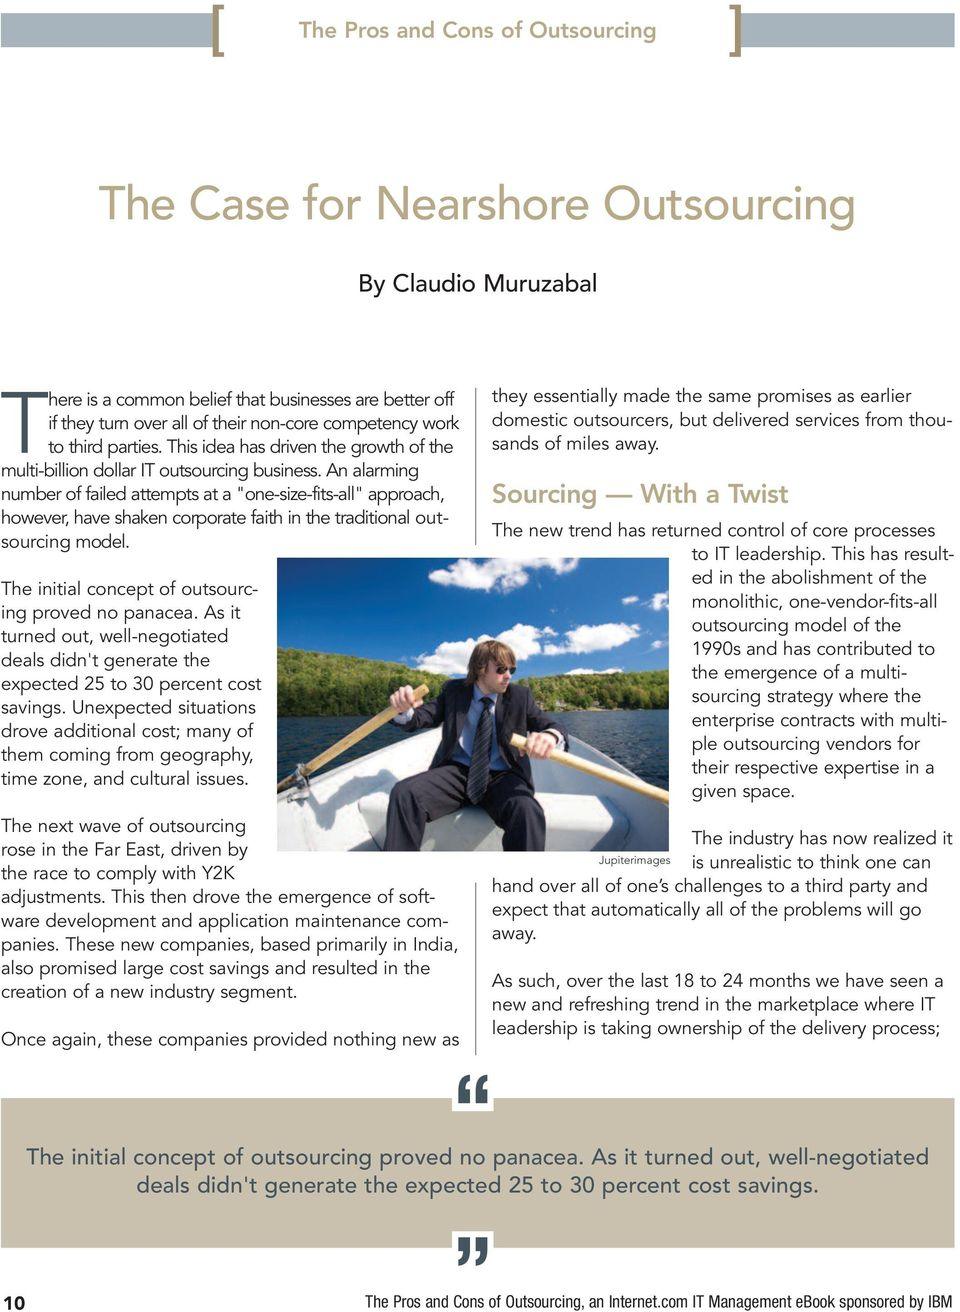 "An alarming number of failed attempts at a ""one-size-fits-all"" approach, however, have shaken corporate faith in the traditional outsourcing model."